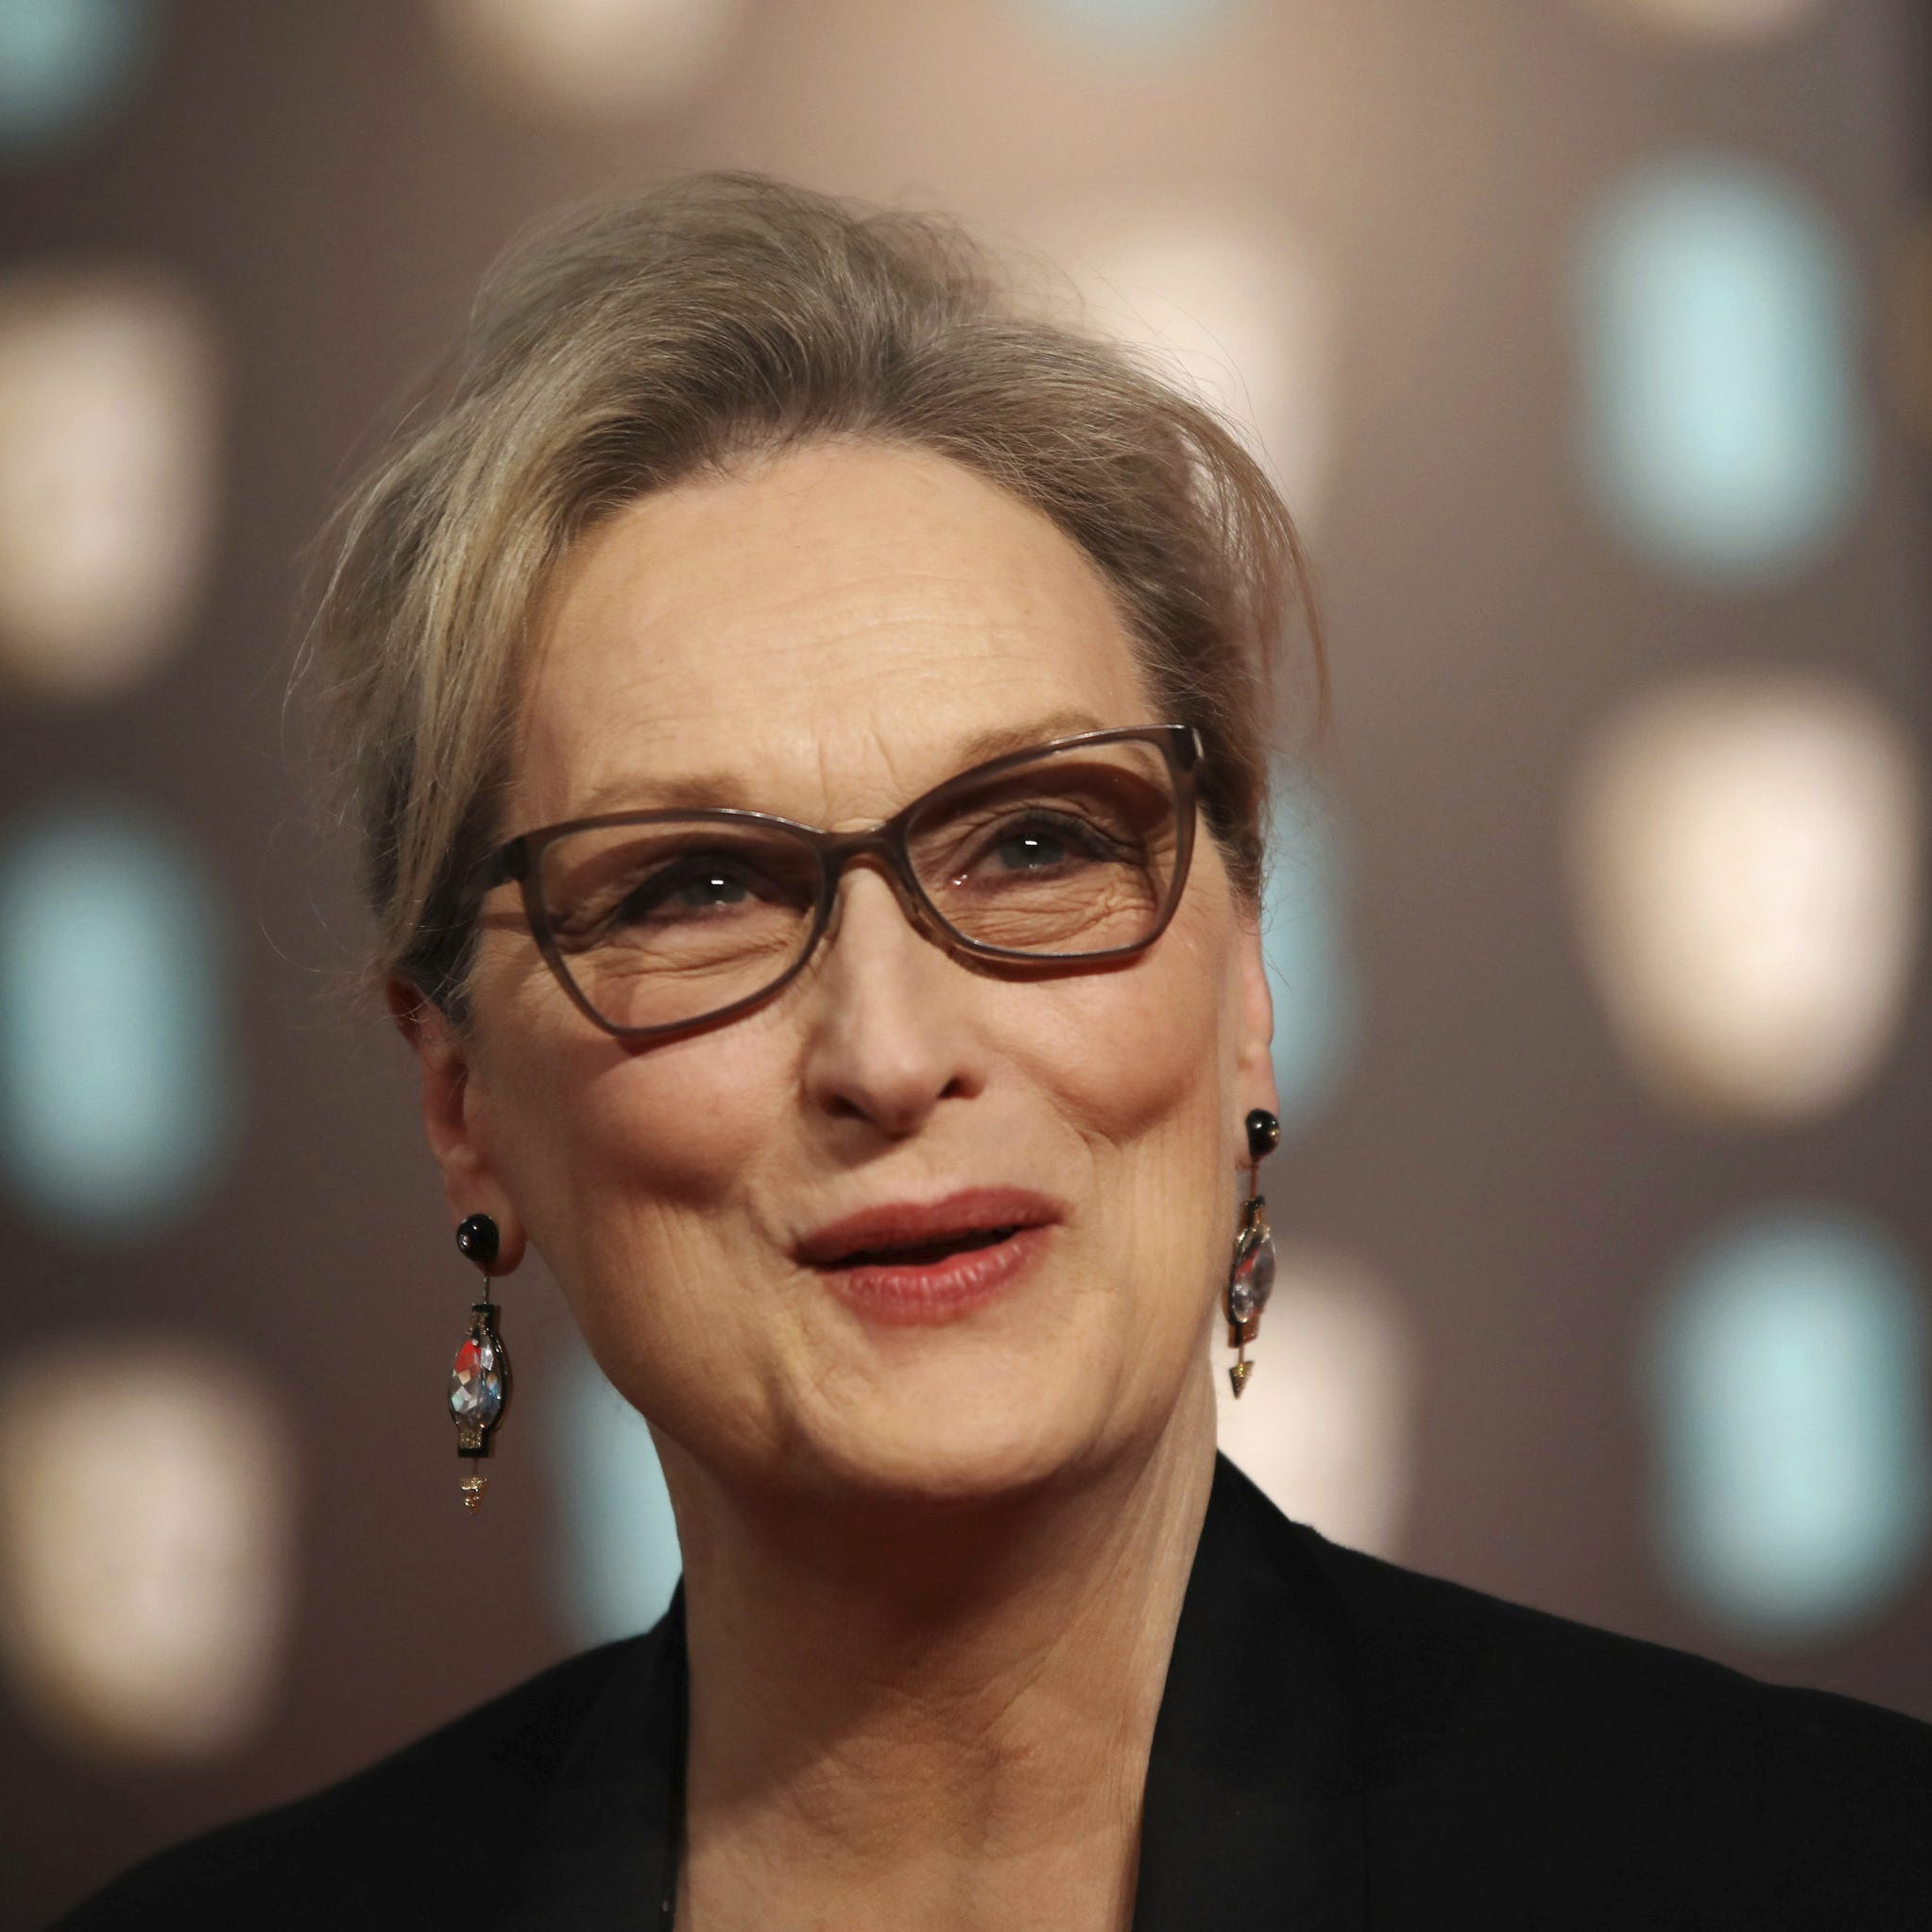 Meryl Streep and Stephen Colbert: how to get tickets for NJ appearance